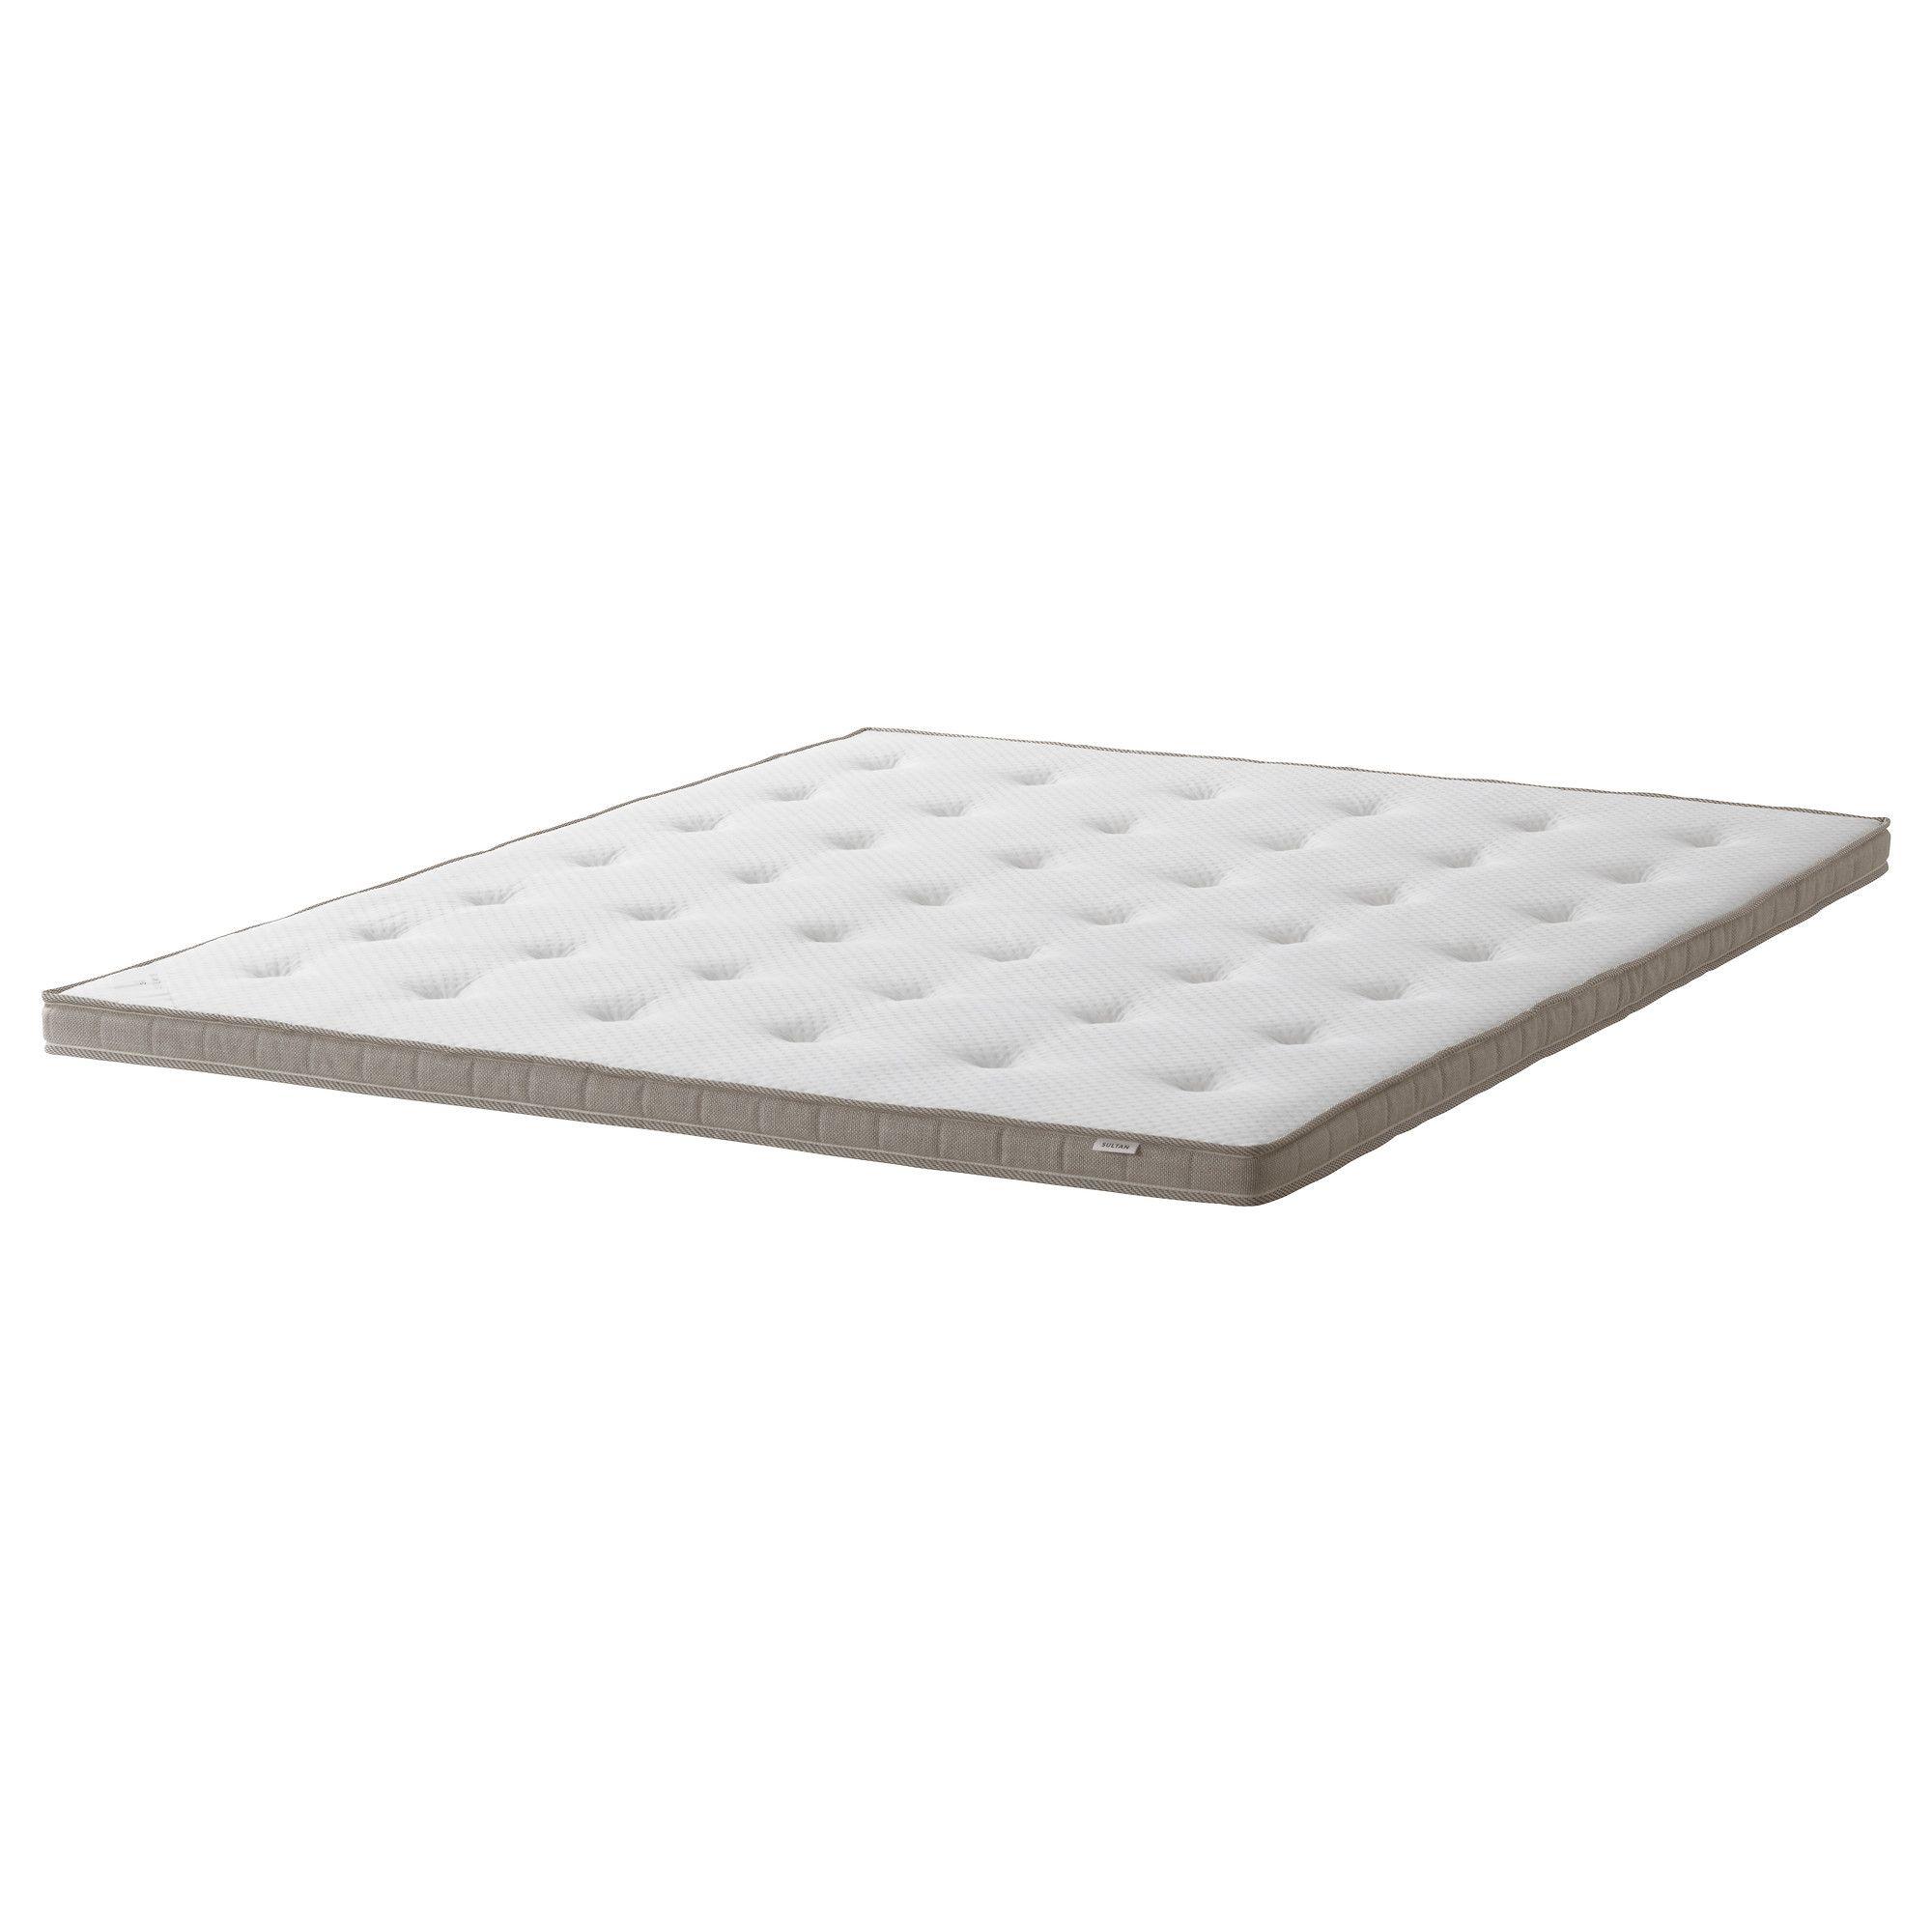 mattresses know facts shocking reviews need ikea you mattress to header